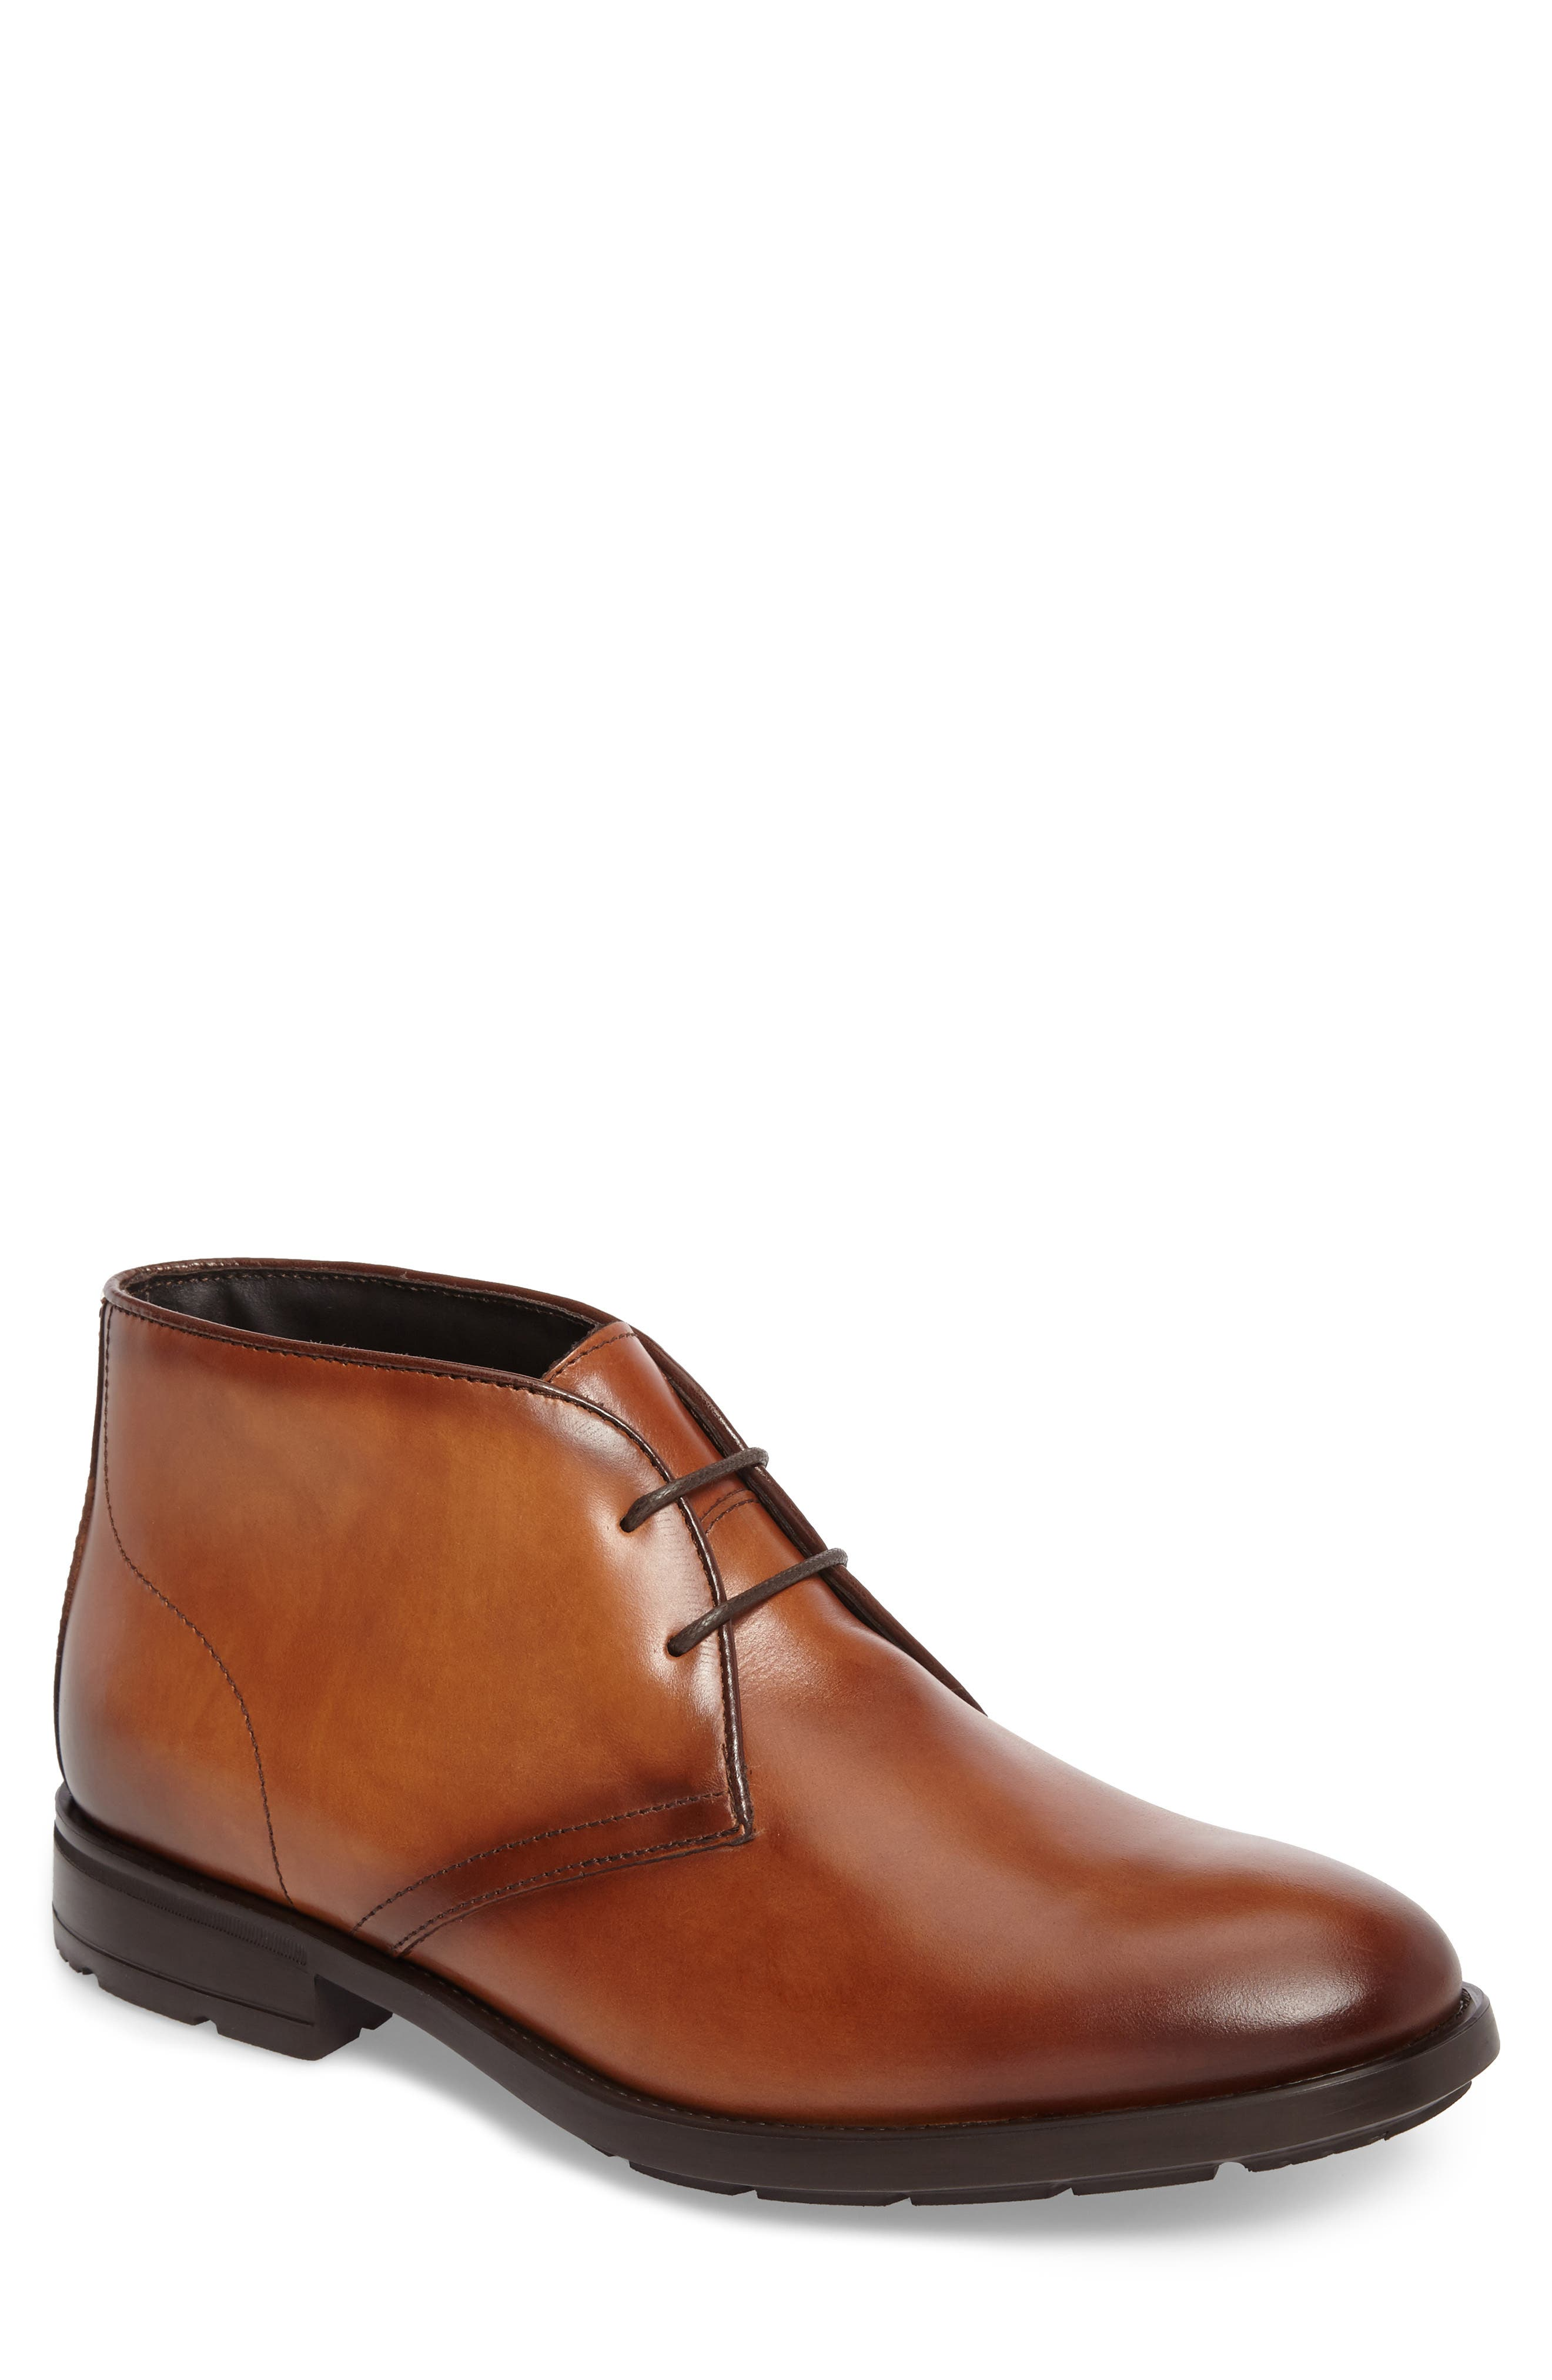 Main Image - To Boot New York Conte Chukka Boot (Men)